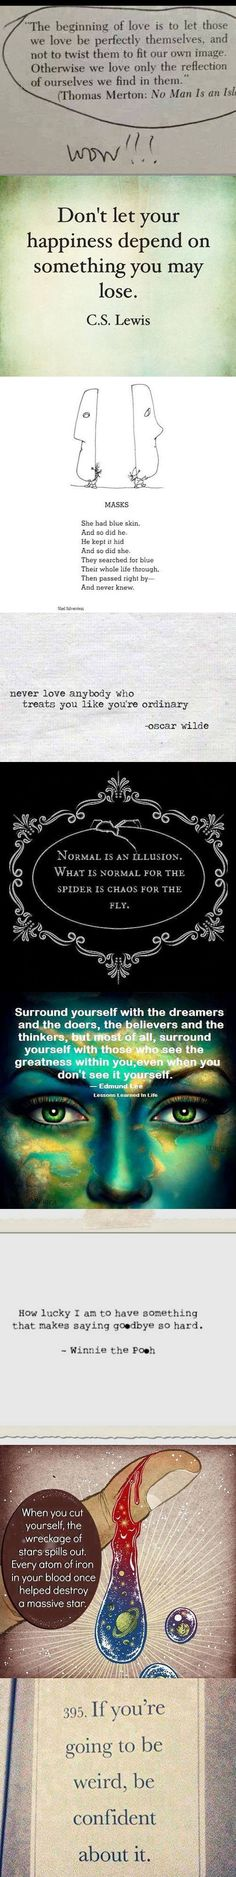 """Normal is an illusion... ;-) "" Some thought-provoking quotes to get you thinking in a different way."